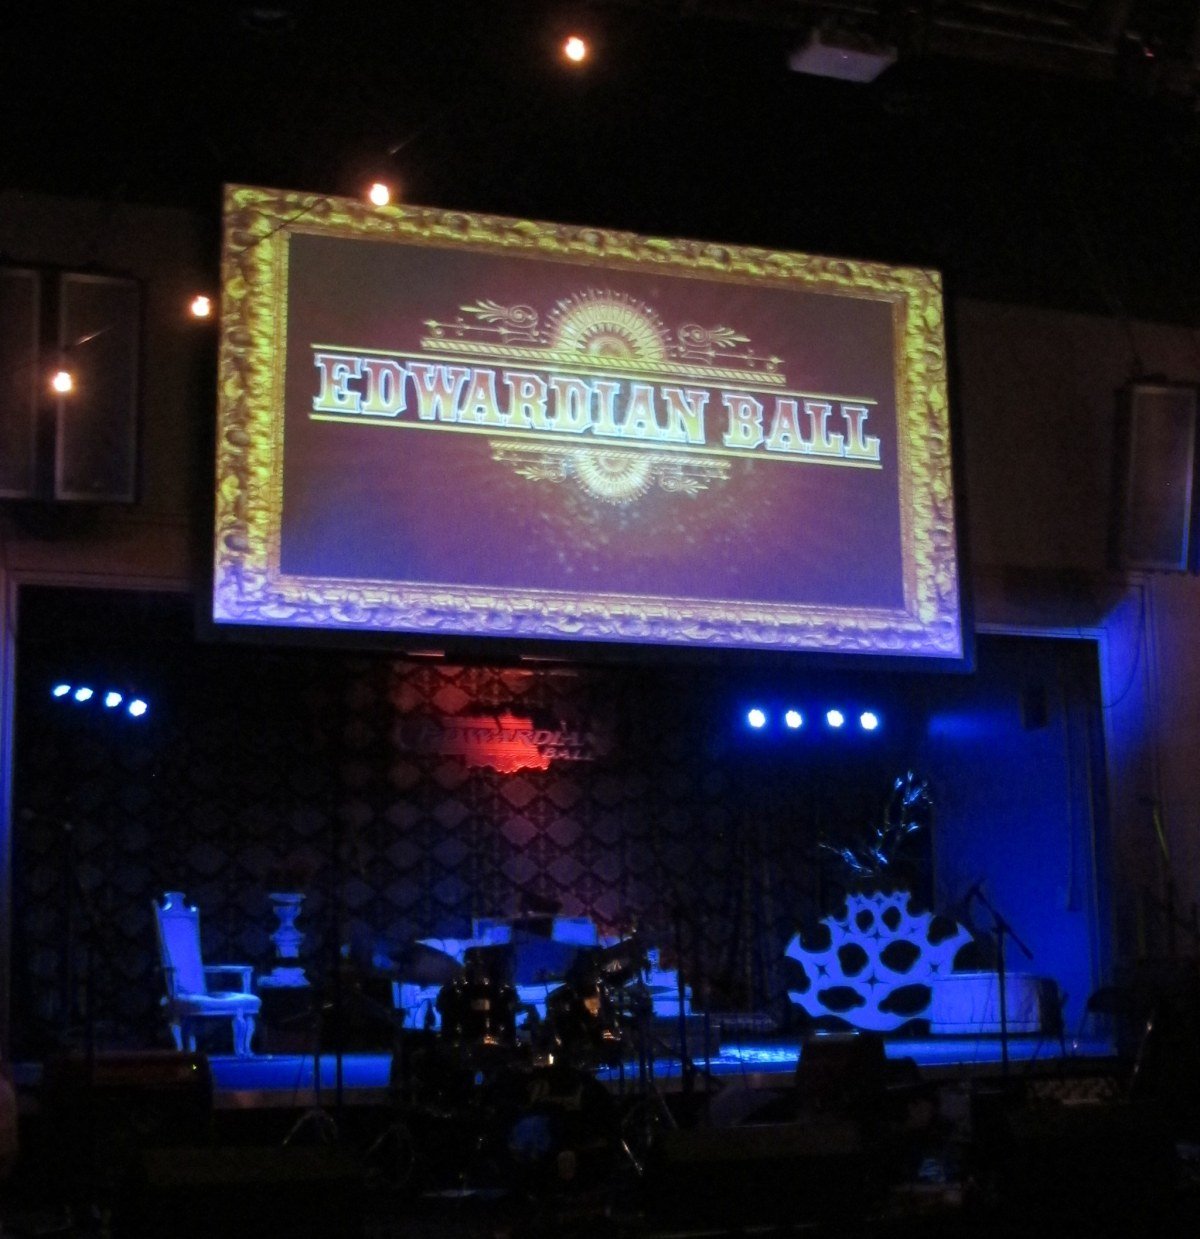 Check out the Edwardian Ball, New Orleans Report on Steampunk Journal